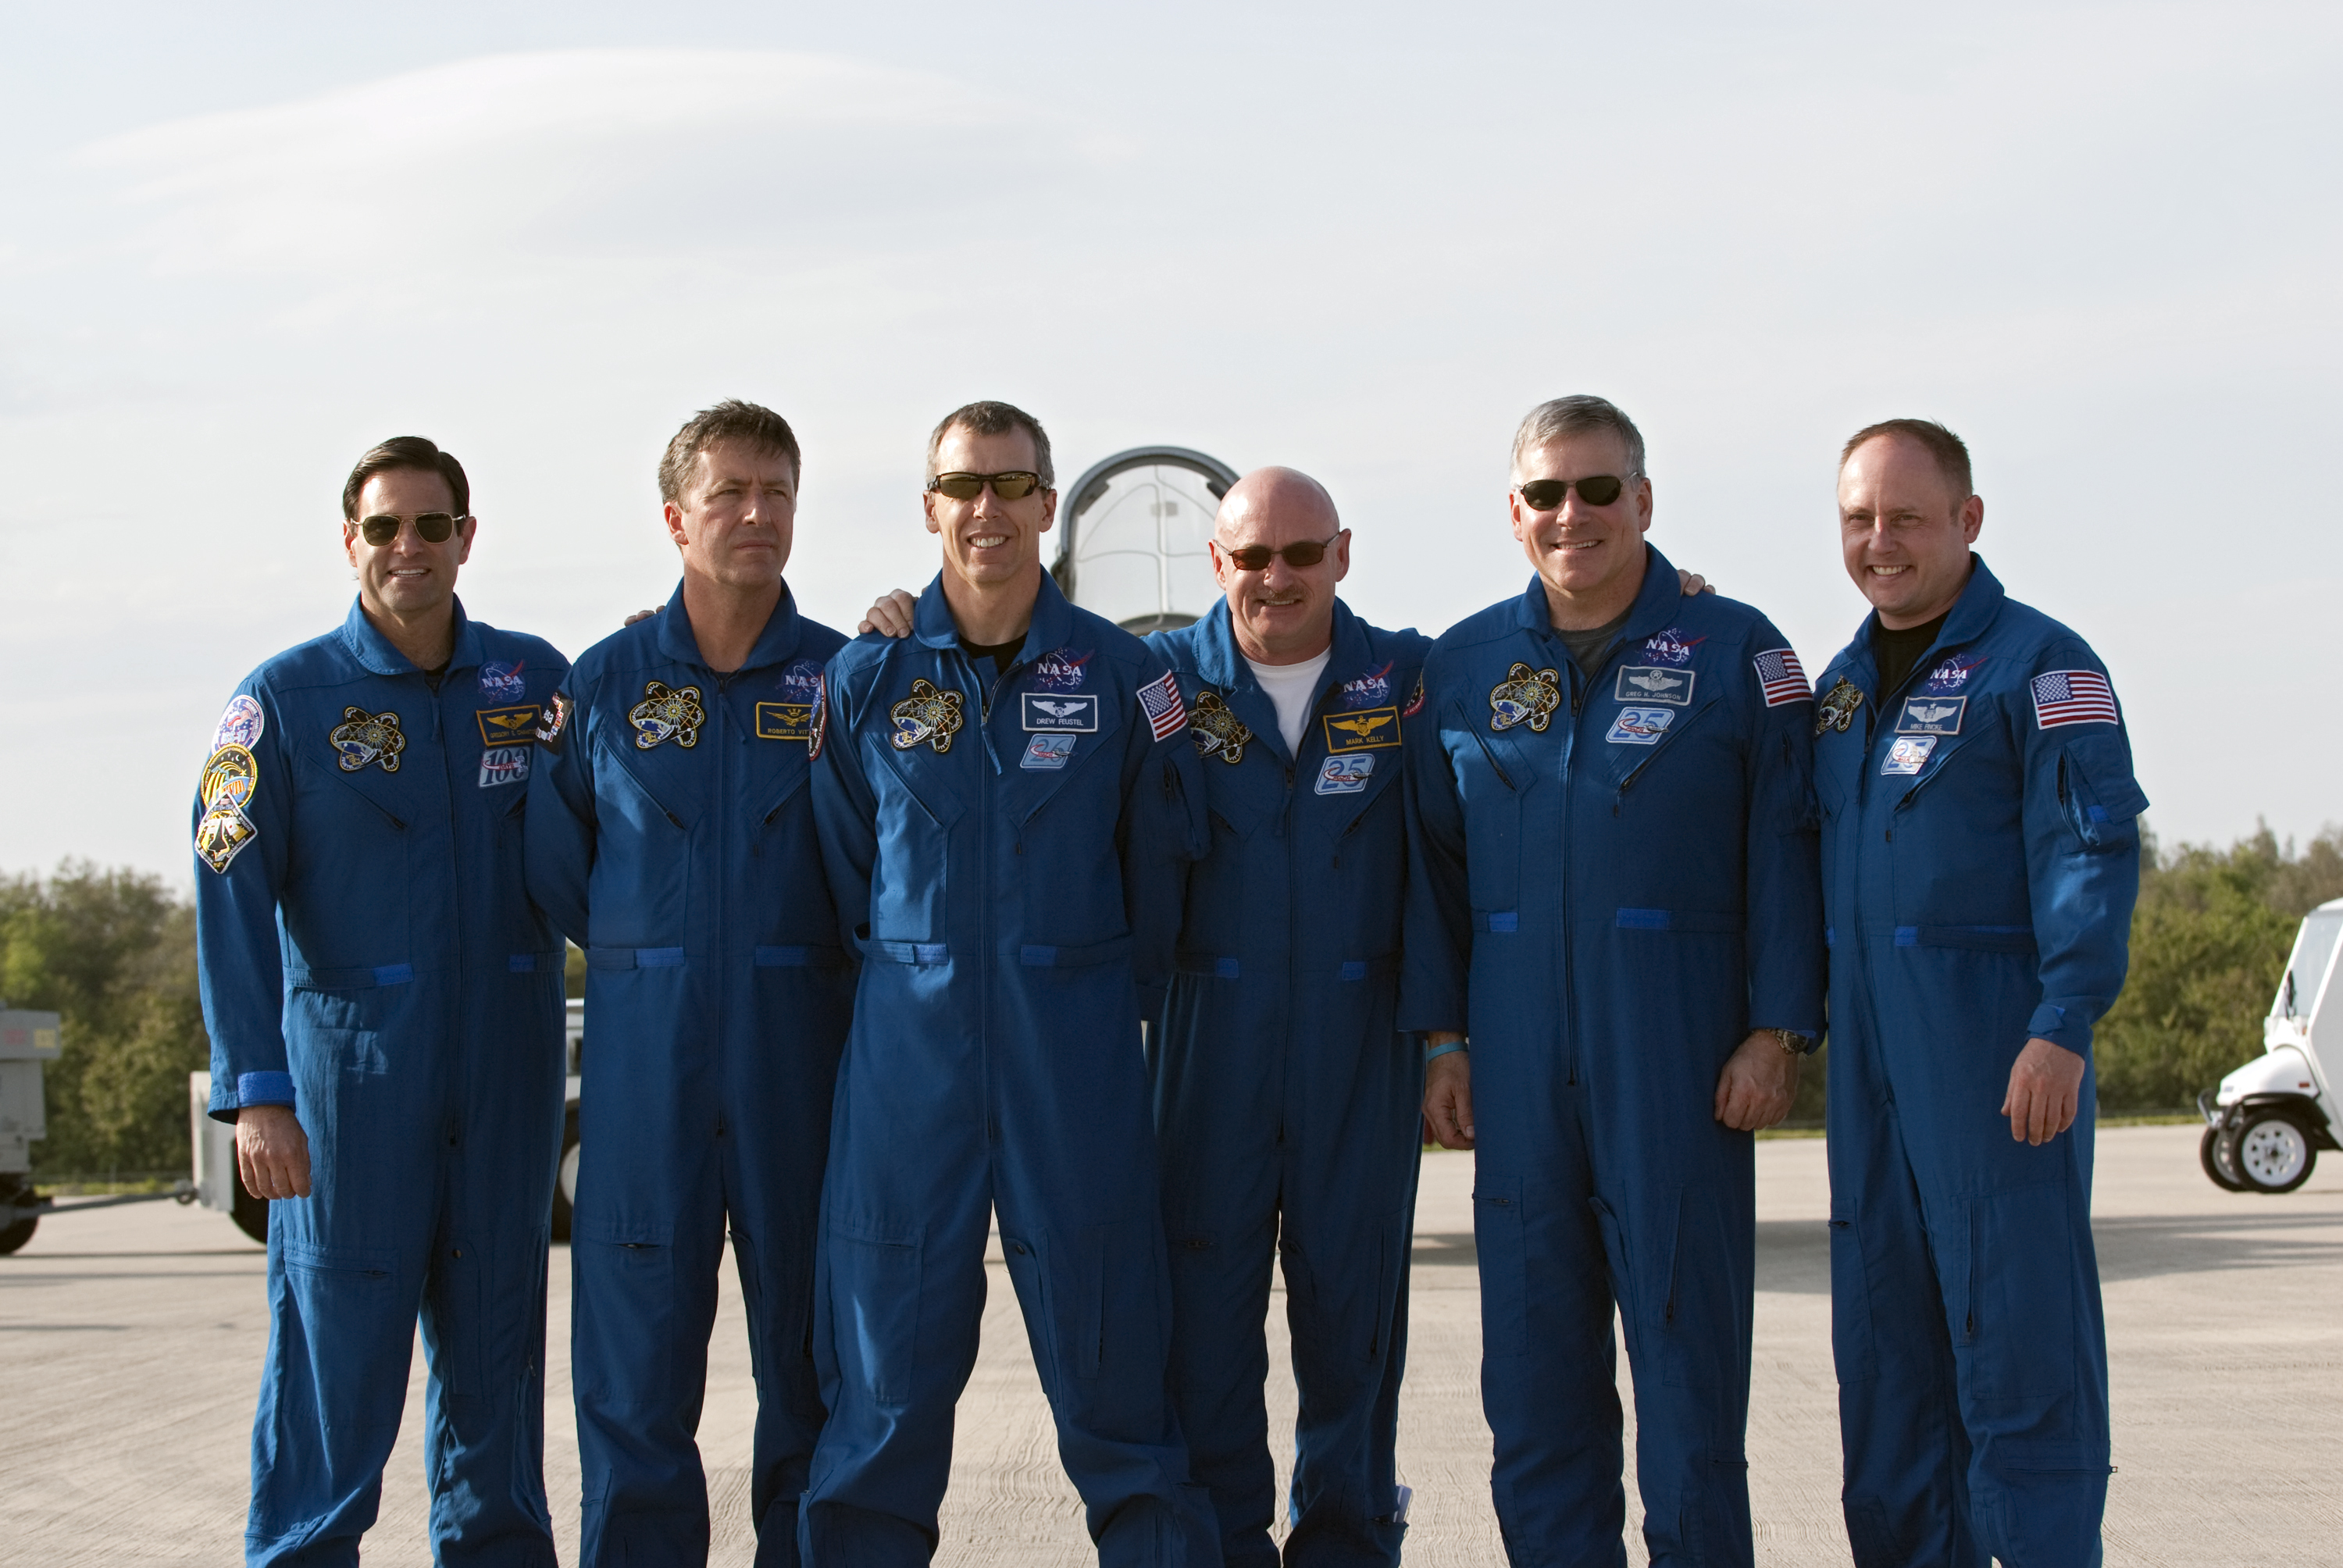 Endeavour Shuttle Astronauts Arrive in Florida for Launch Practice